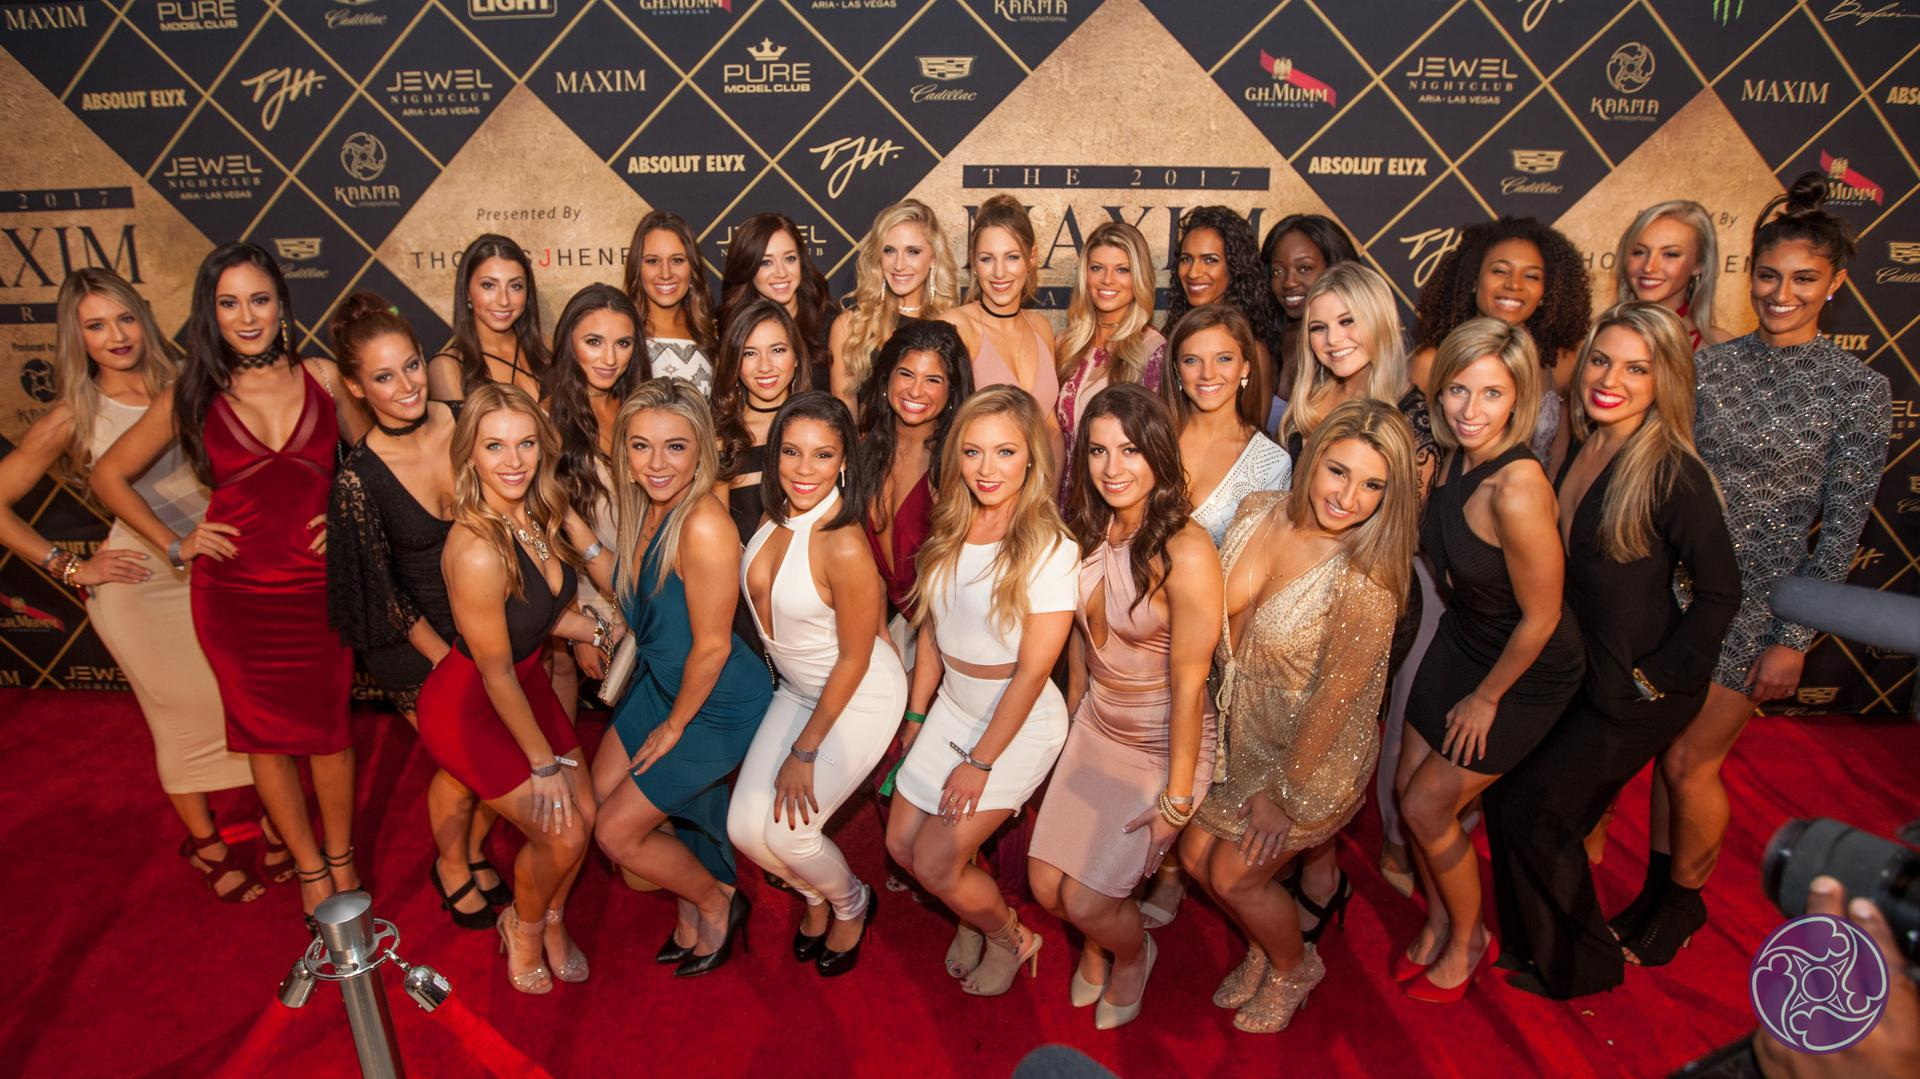 The New England Patriots Cheerleaders at the 2017 Maxim Super Bowl Party